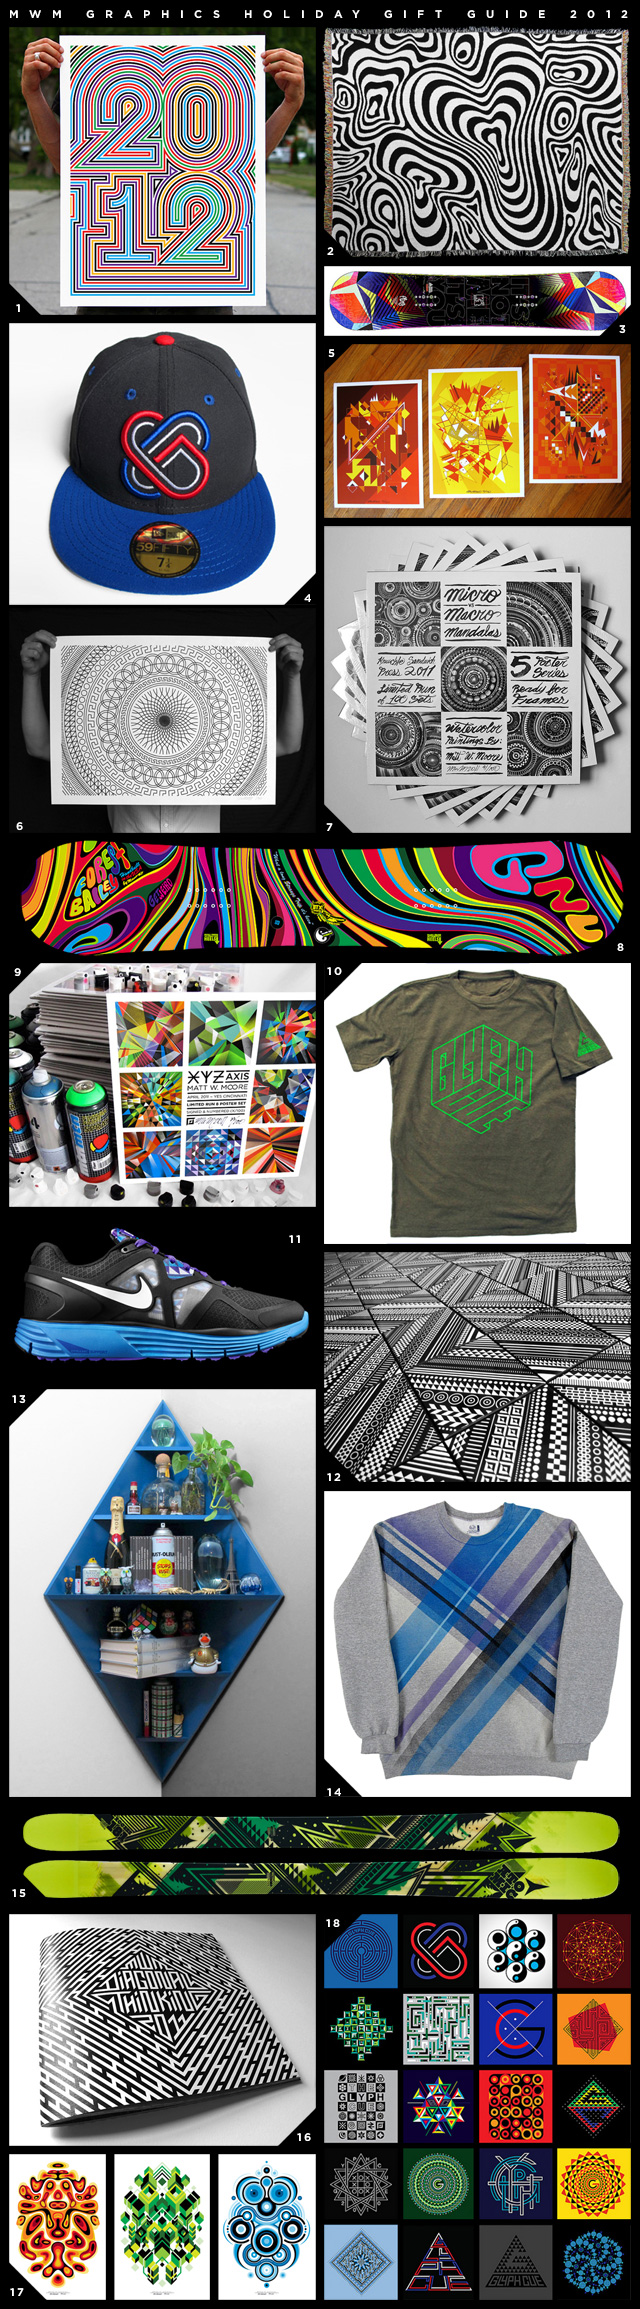 MWM Graphics : Holiday Gift Guide.